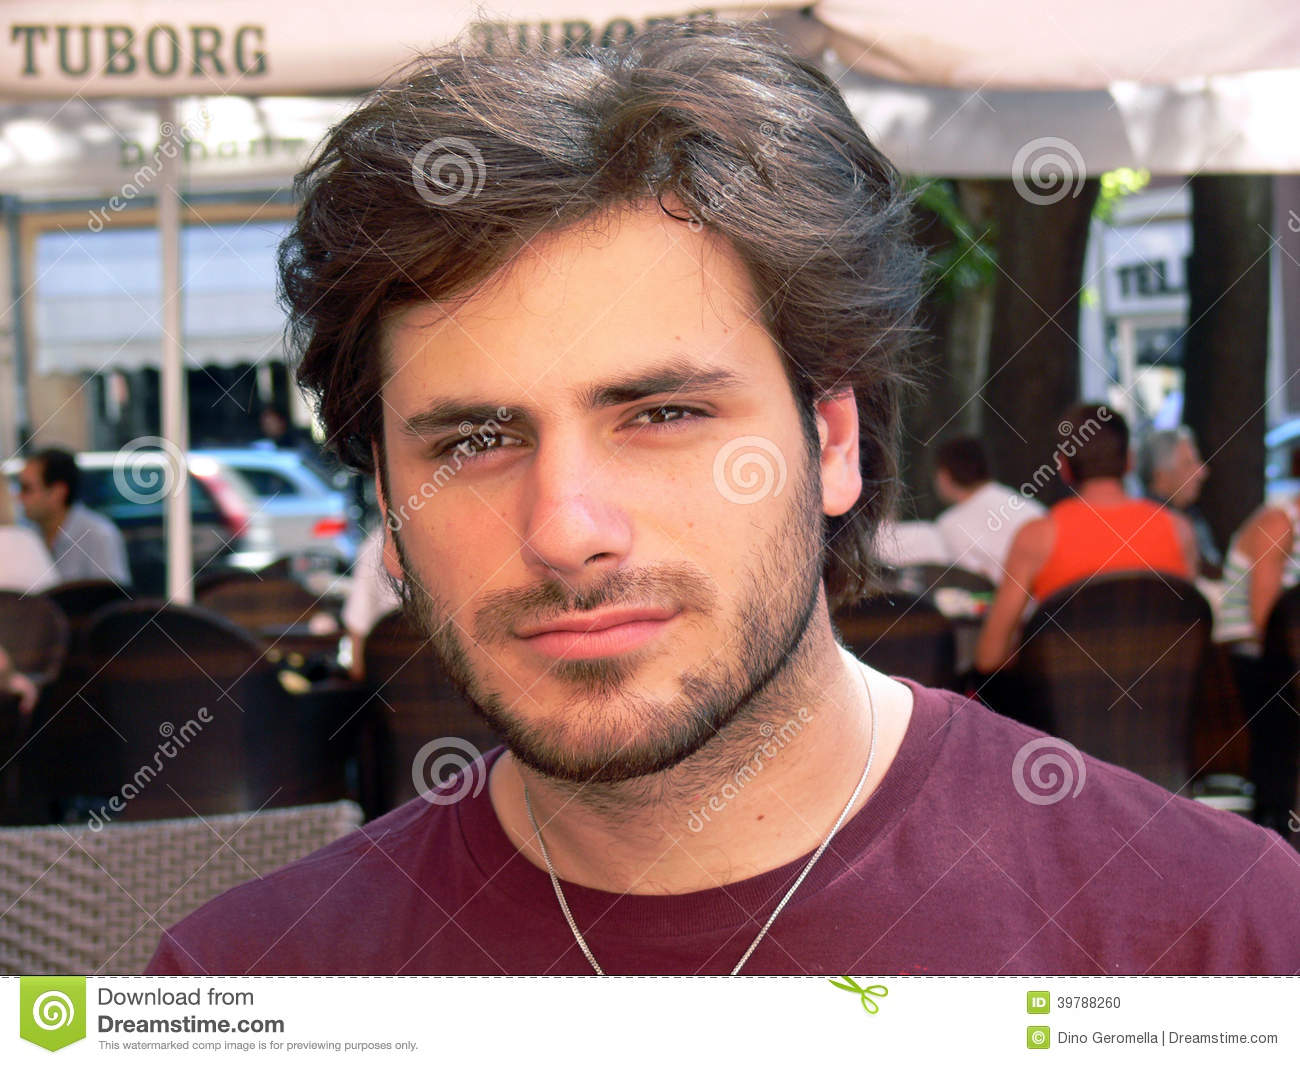 Stjepan Hauser From 2Cellos Editorial Image - Image of sulic, trio